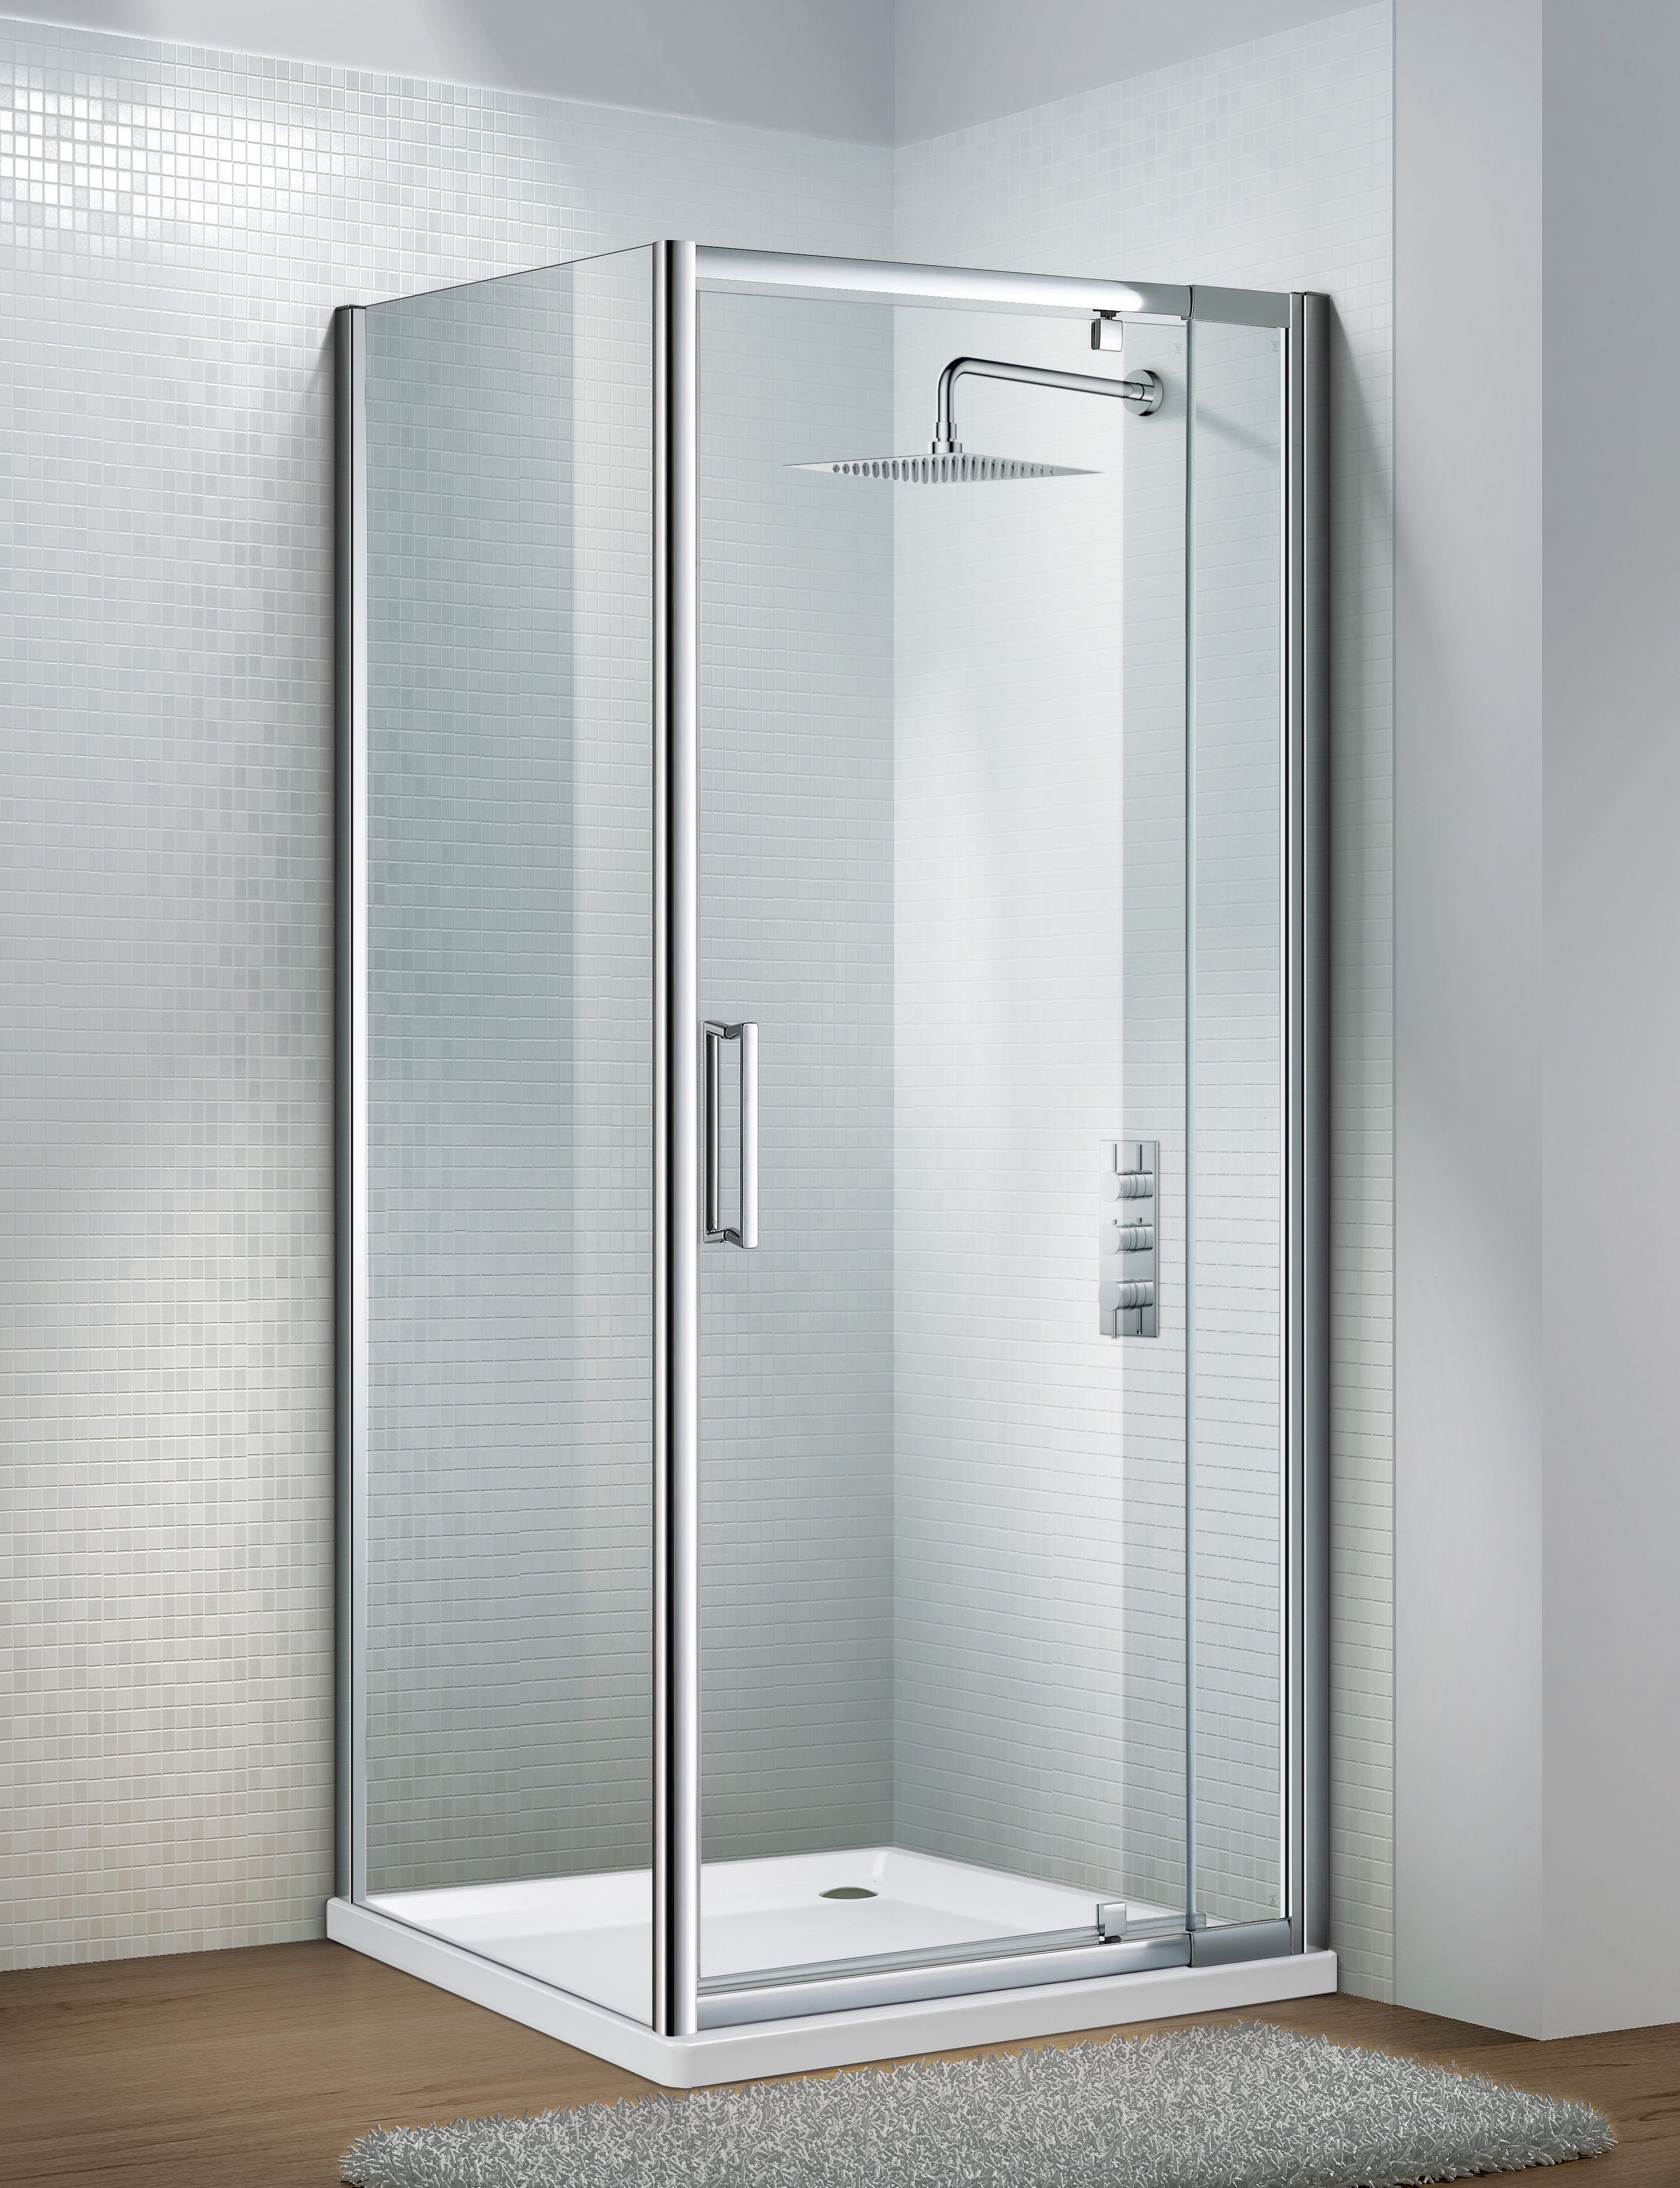 Flair Slimline Capella Frameless Shower Enclosure Side Panel  sc 1 st  Topline & Flair Frameless Shower Enclosure Side Panel | Shower Doors | Topline.ie